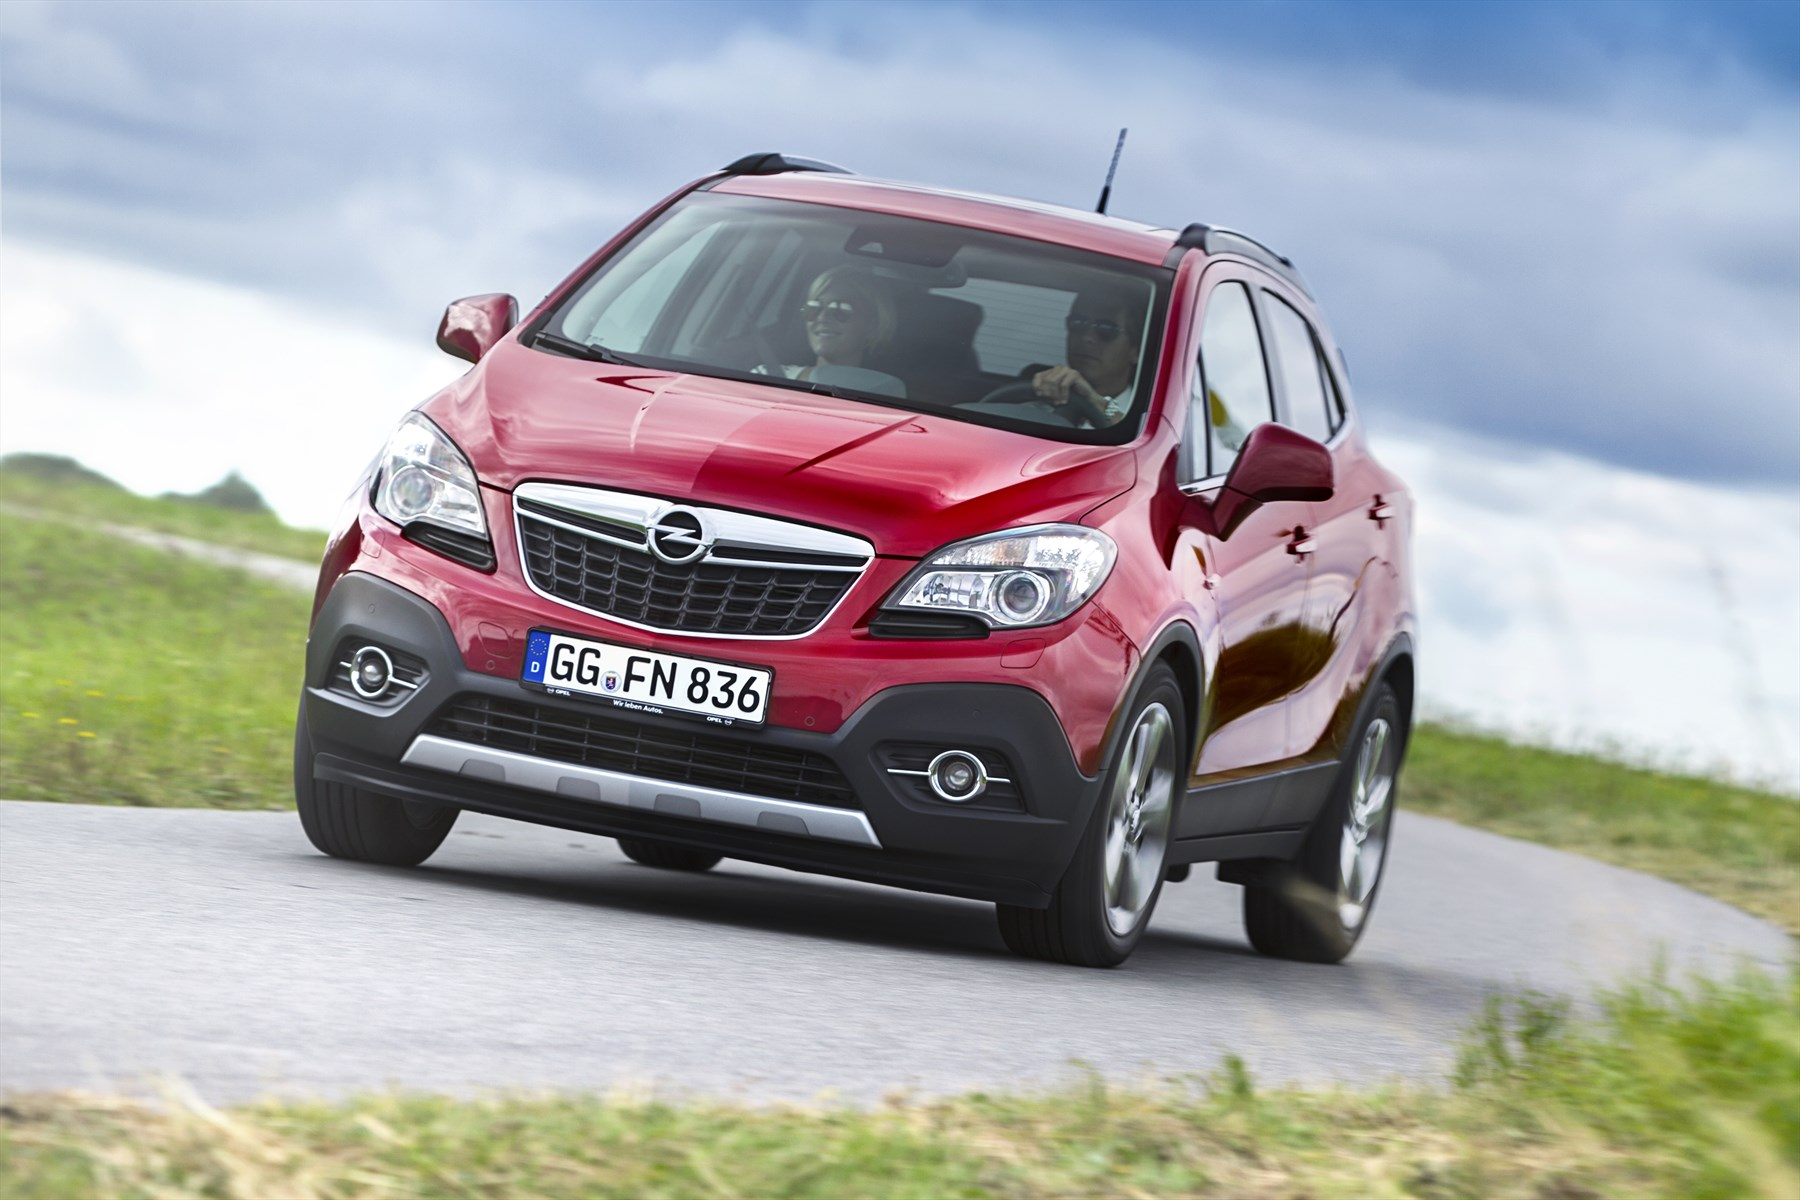 New Opel Models for South Africa   Latest News   Surf4cars